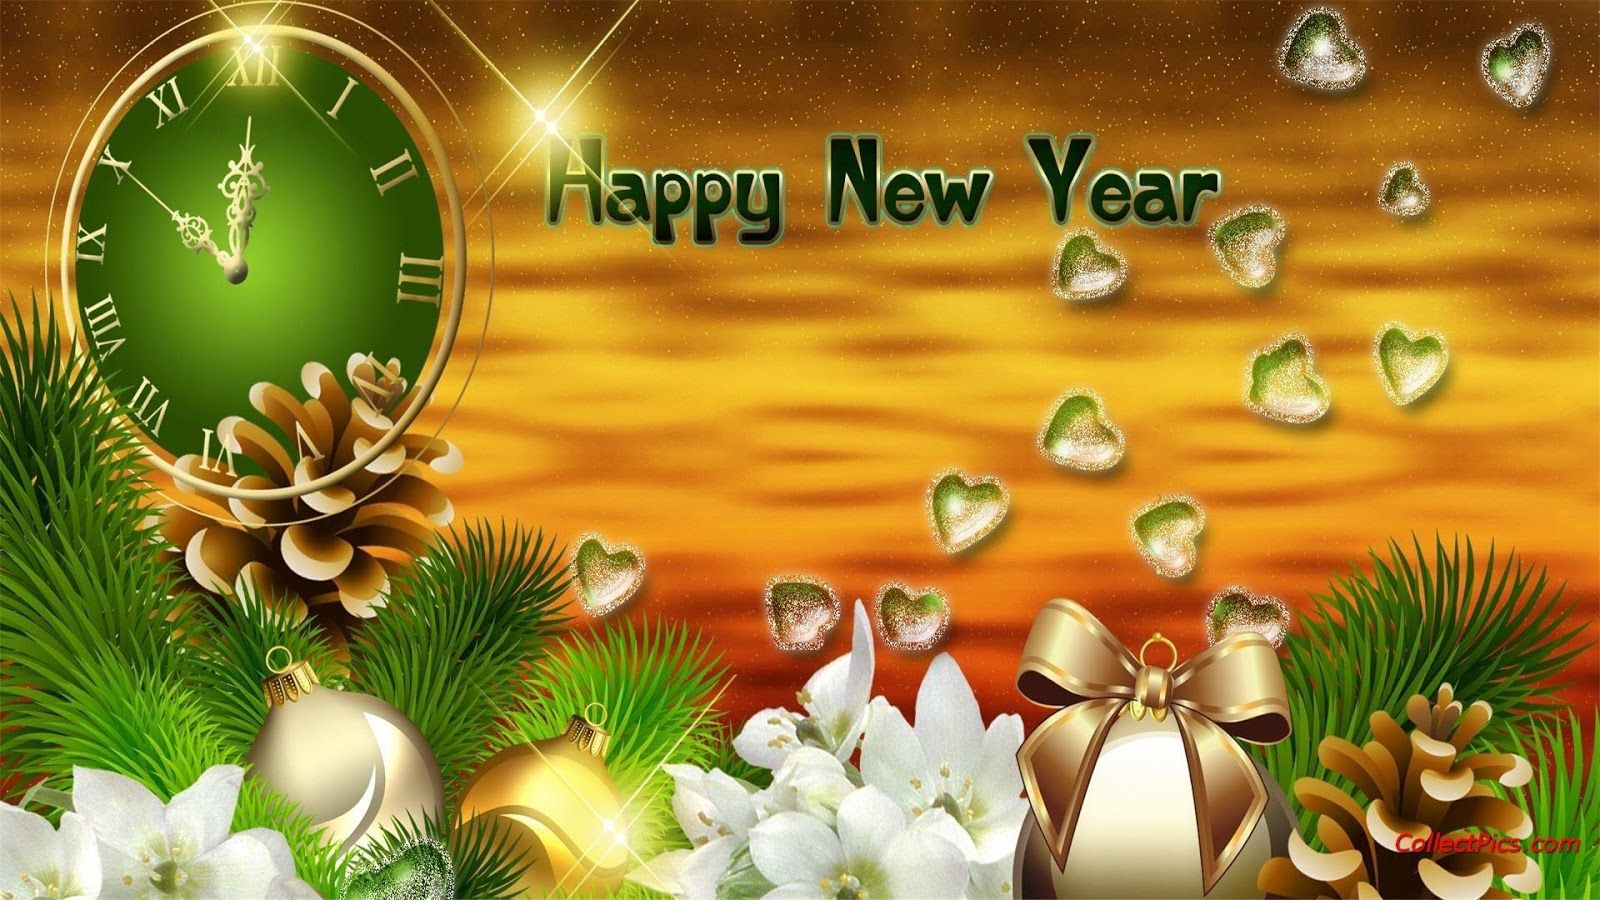 you can download the happy new year wallpaper in hd and happy new year 2016 wallpapers downloadnew happy new year wallpaper